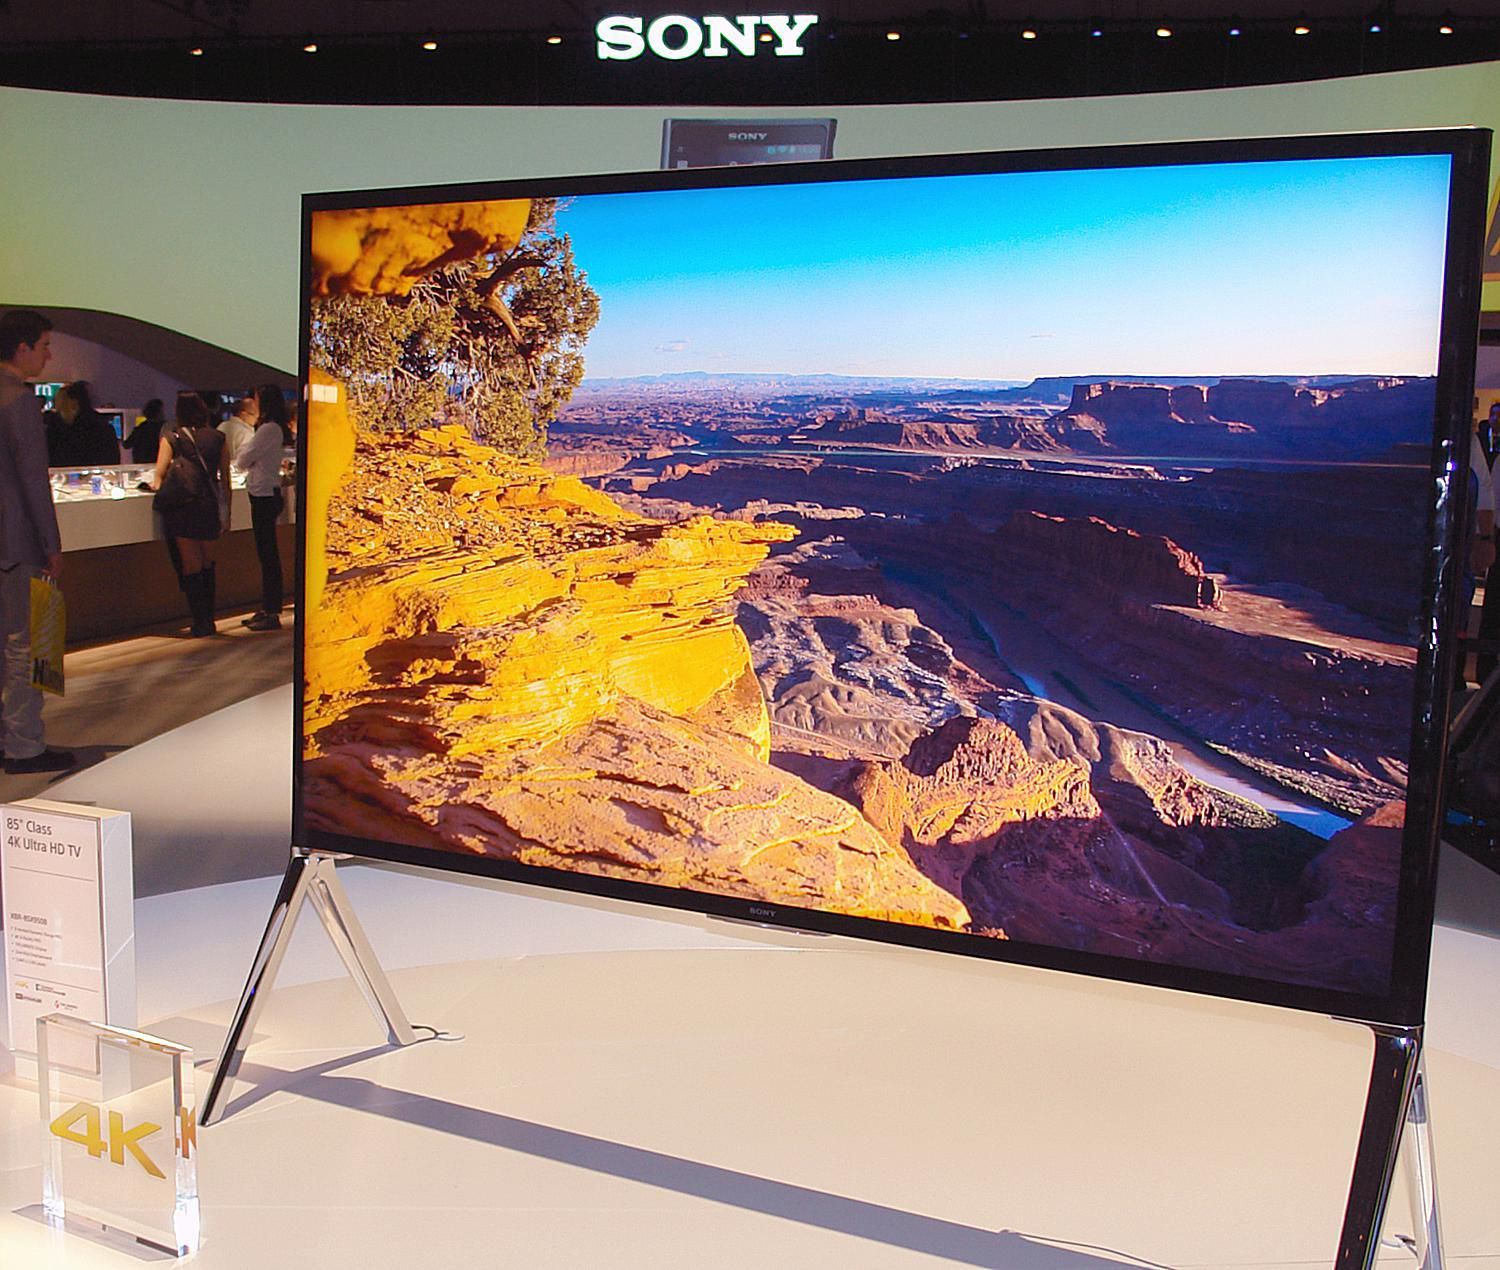 sony 4k ultra hd tv. sony 4k ultra hd tv